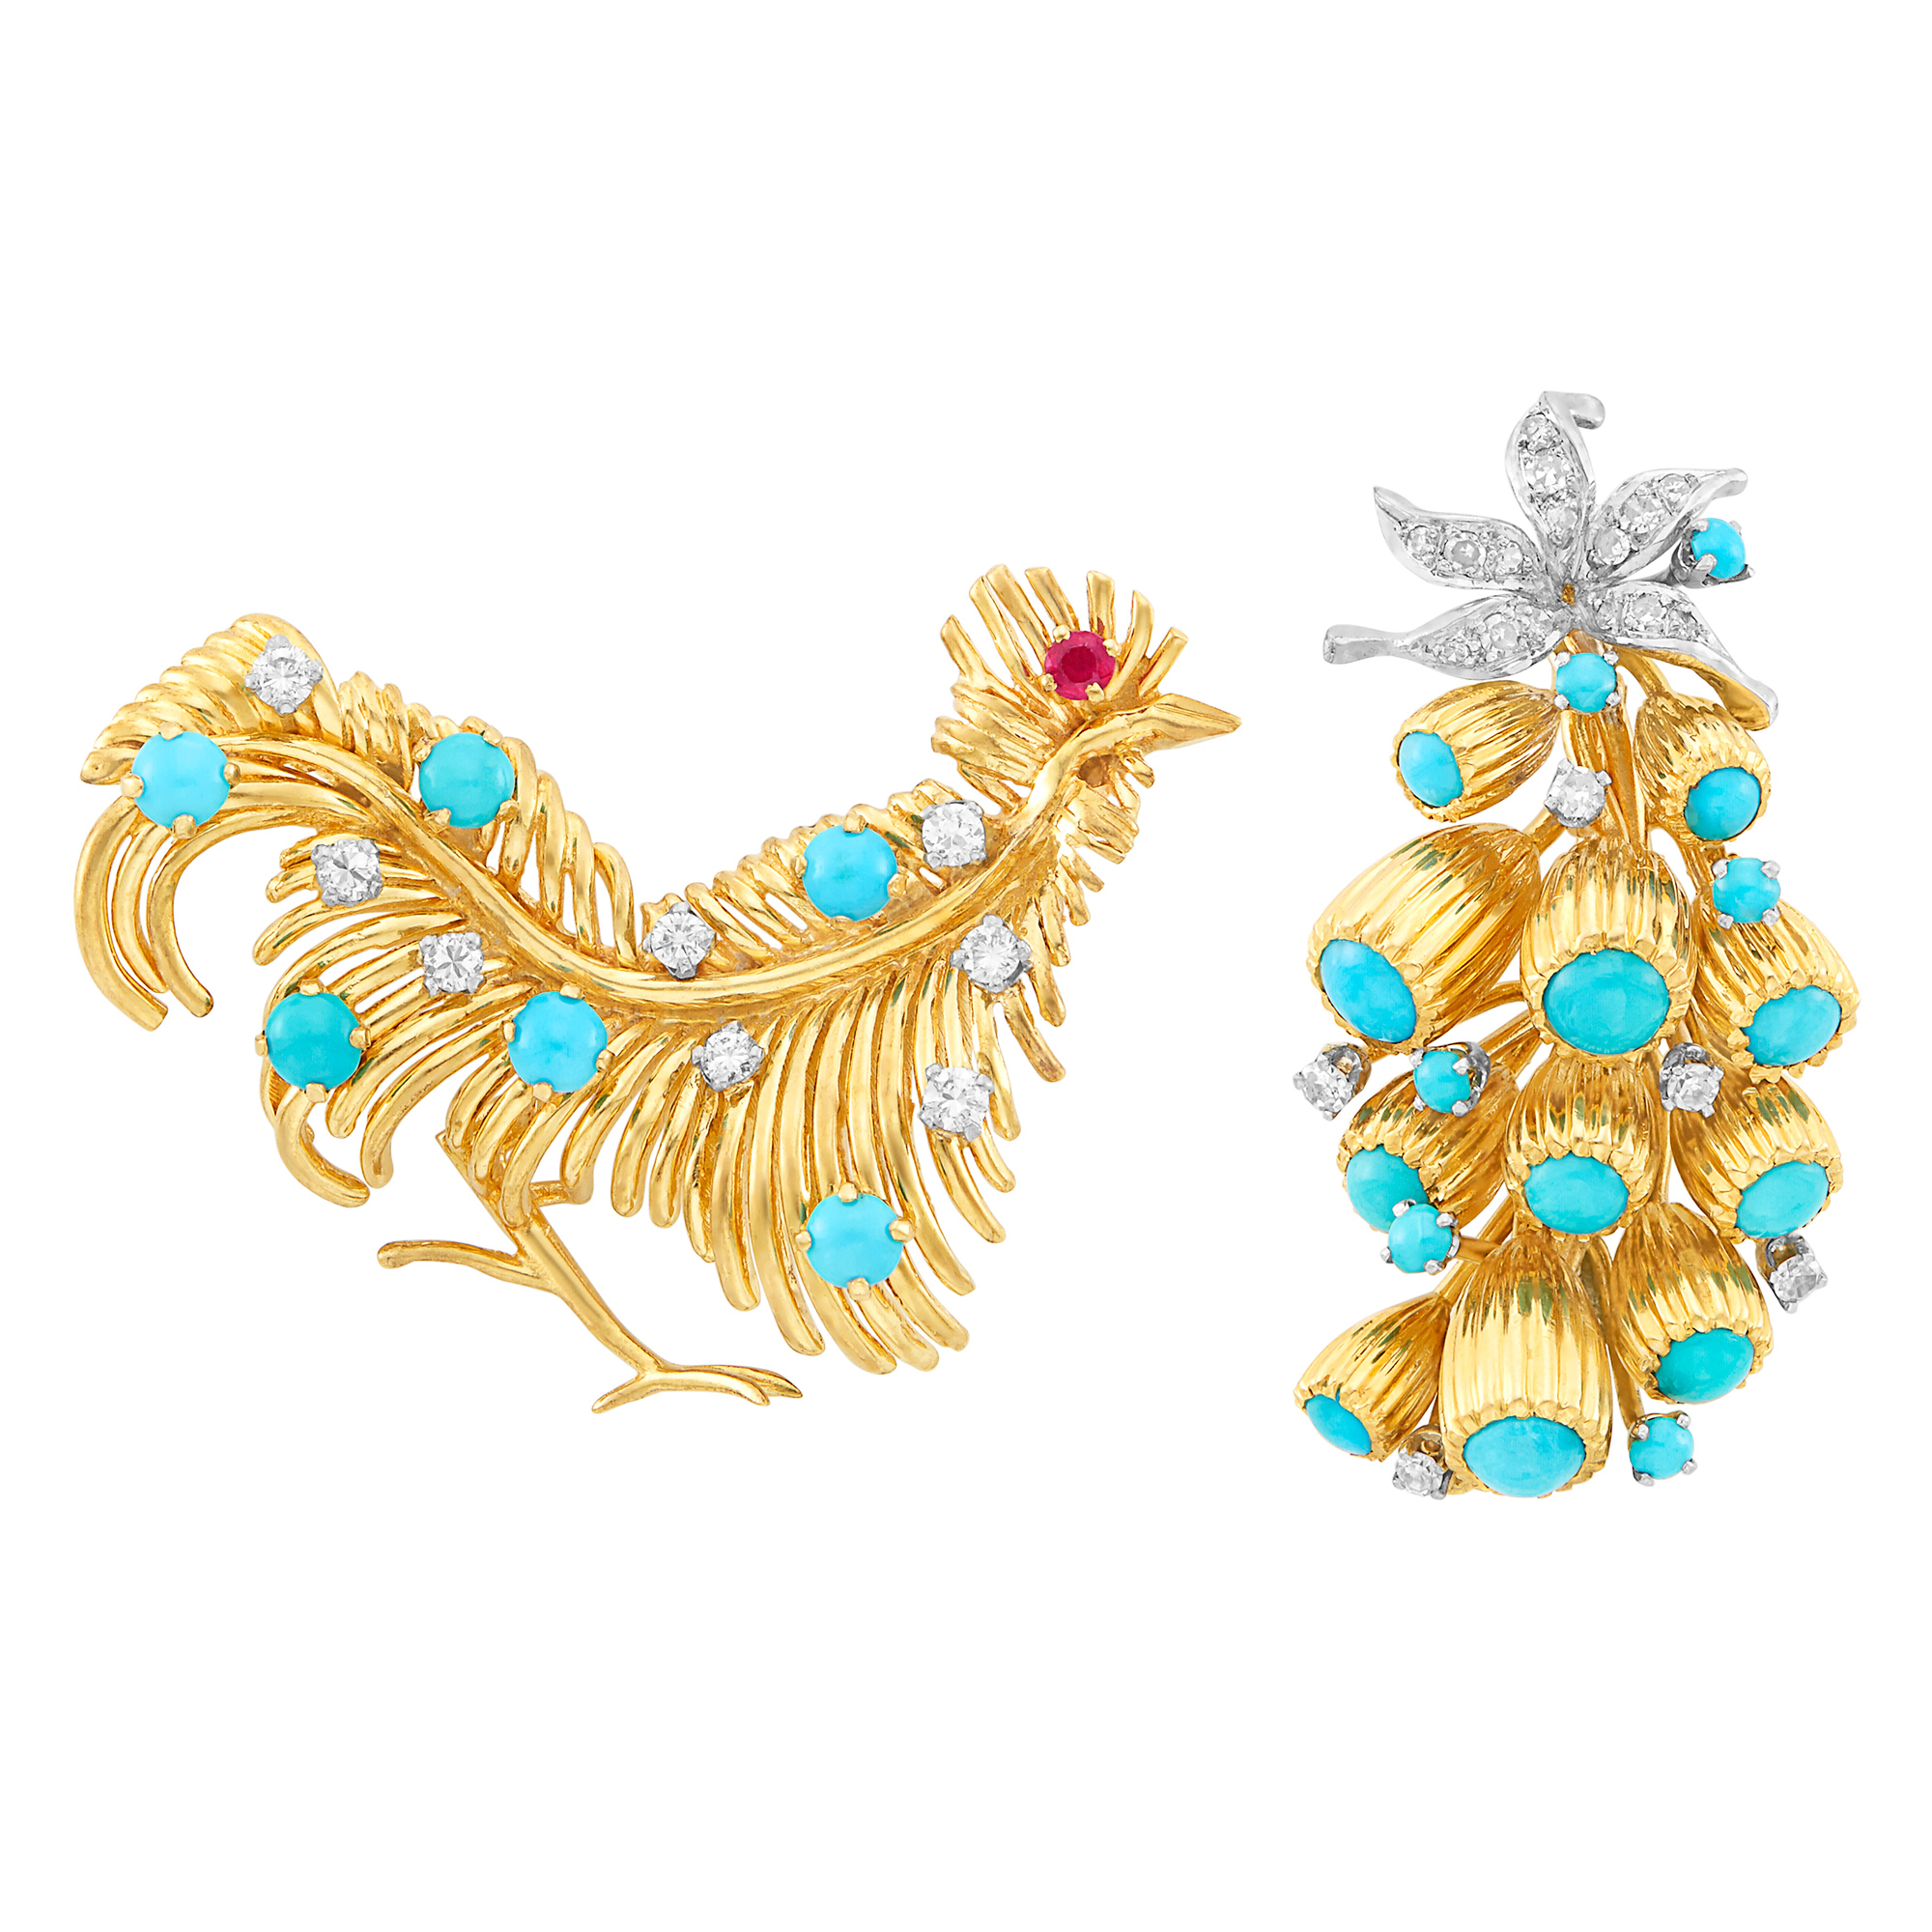 Lot image - Gold, Platinum, Turquoise and Diamond Floral Brooch and Gold, Turquoise, Diamond and Ruby Rooster Brooch